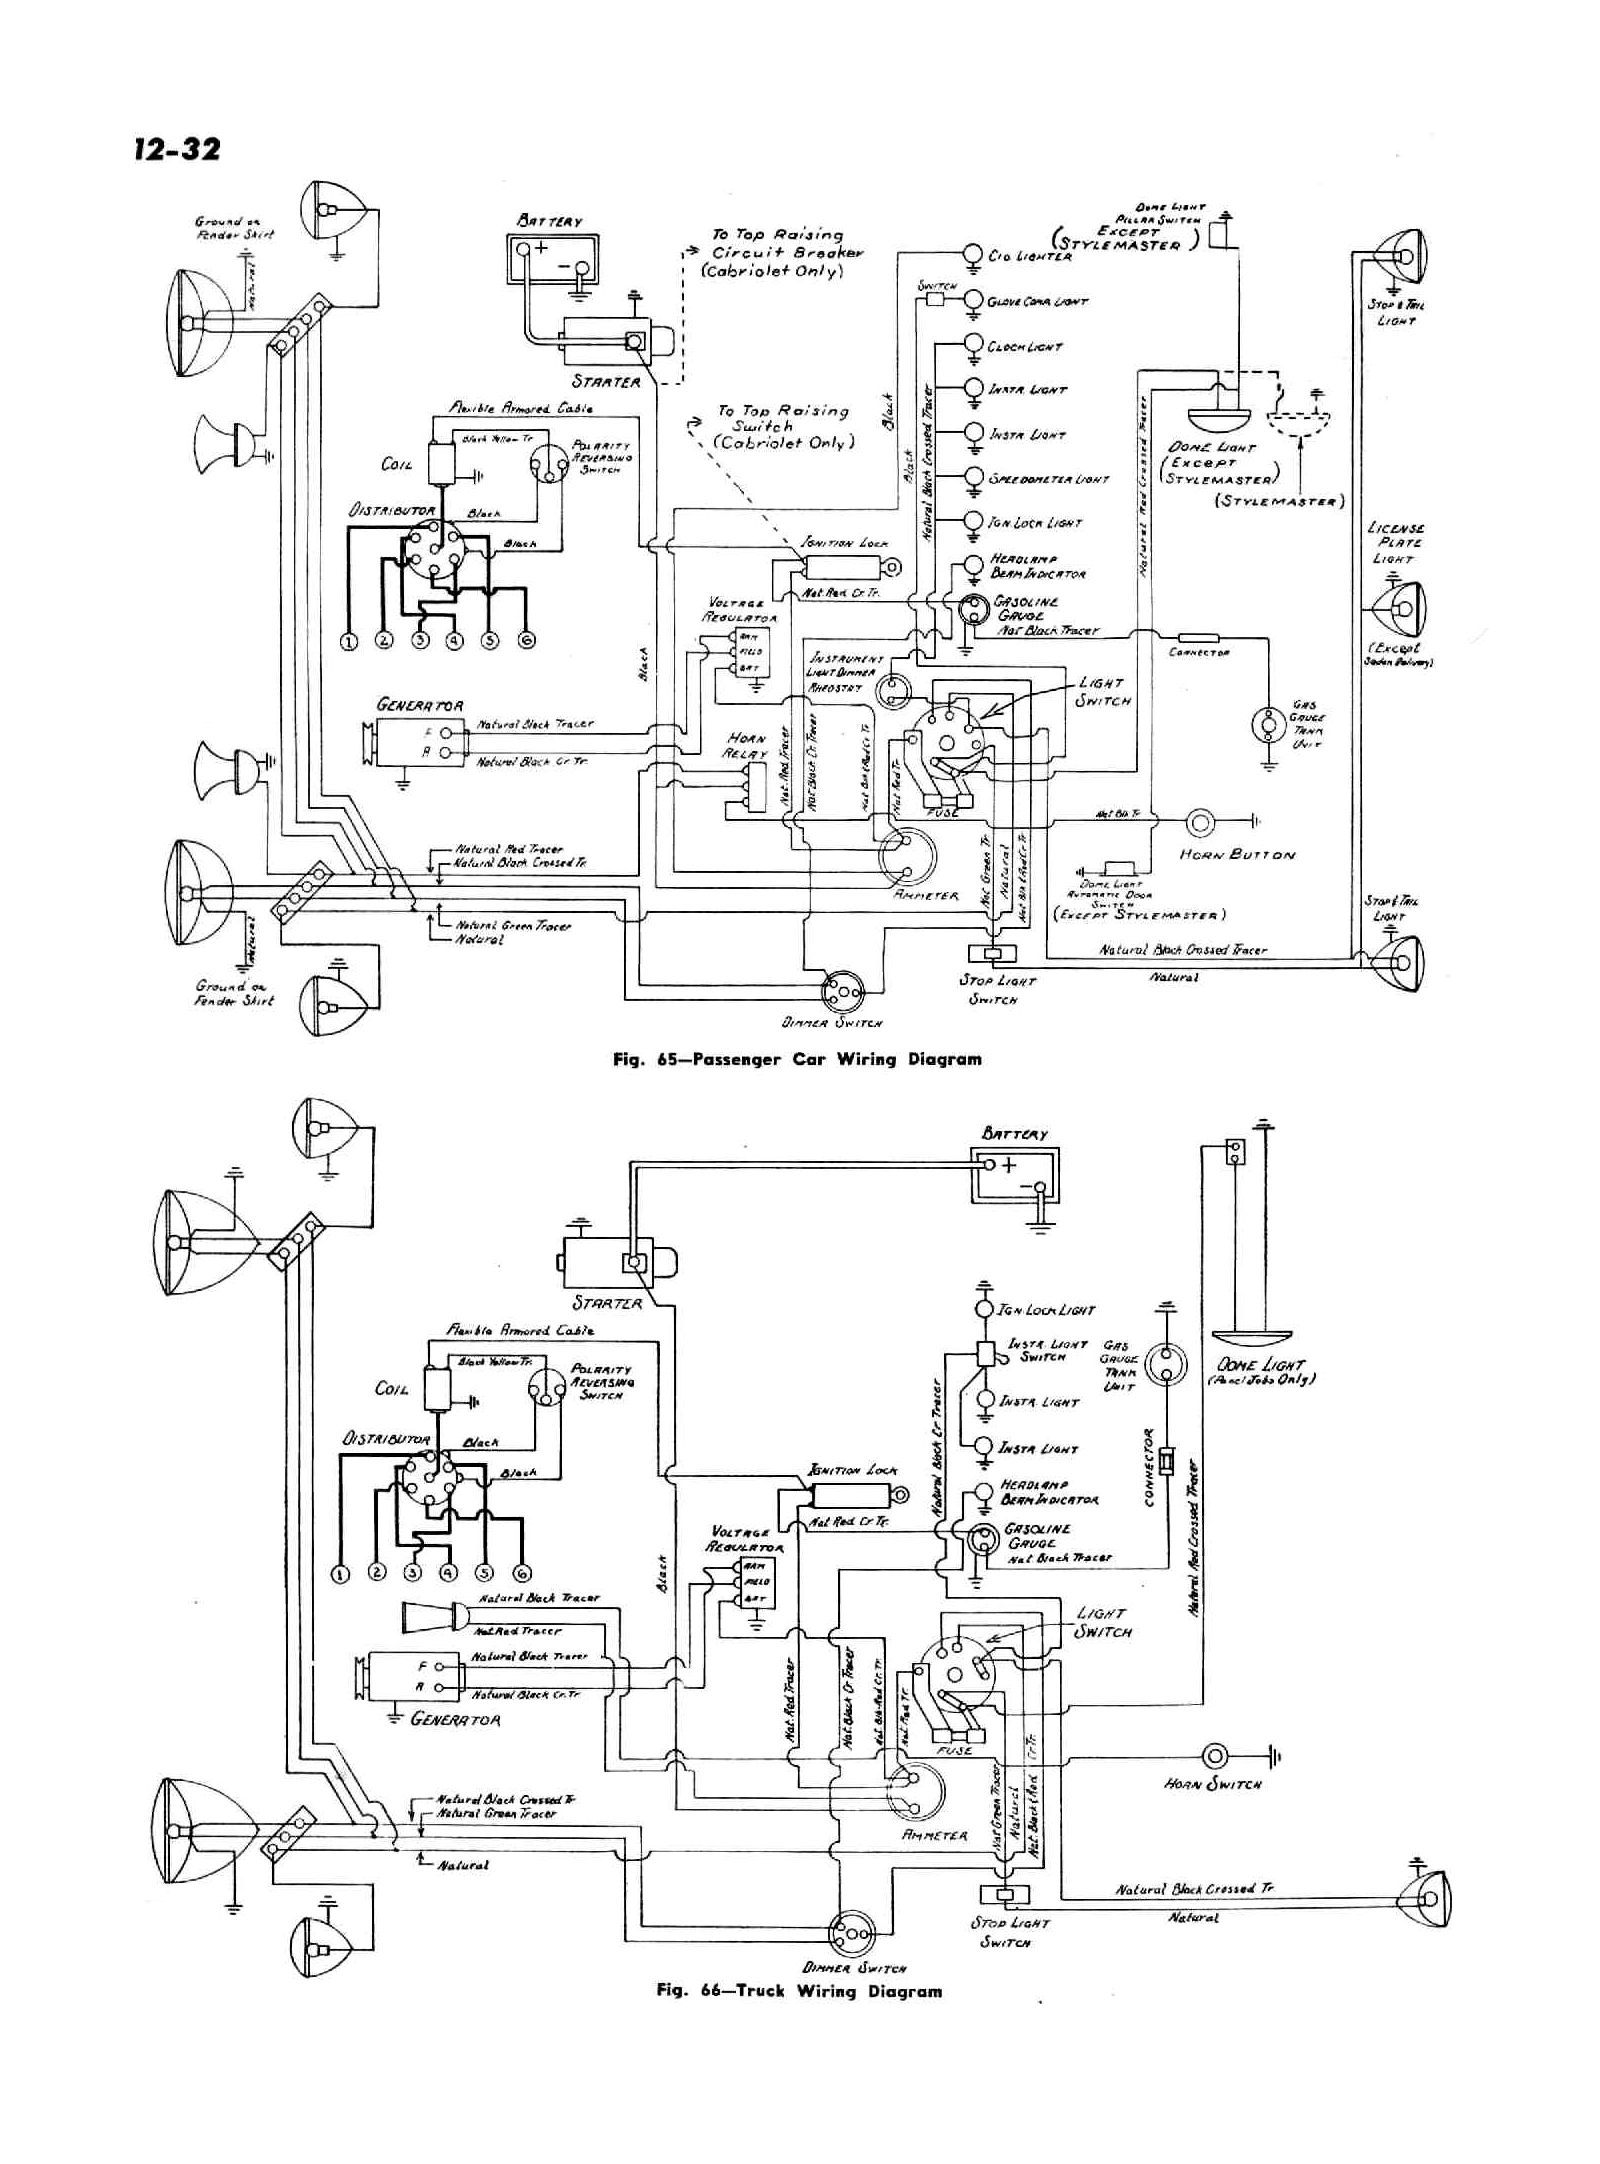 ih 350 tractor wiring diagram wiring diagram Farmall H Tractor Wiring Diagram ih 706 wiring diagram 1965 wiring schematics diagramfarmall 706 diesel wiring diagram most searched wiring diagram